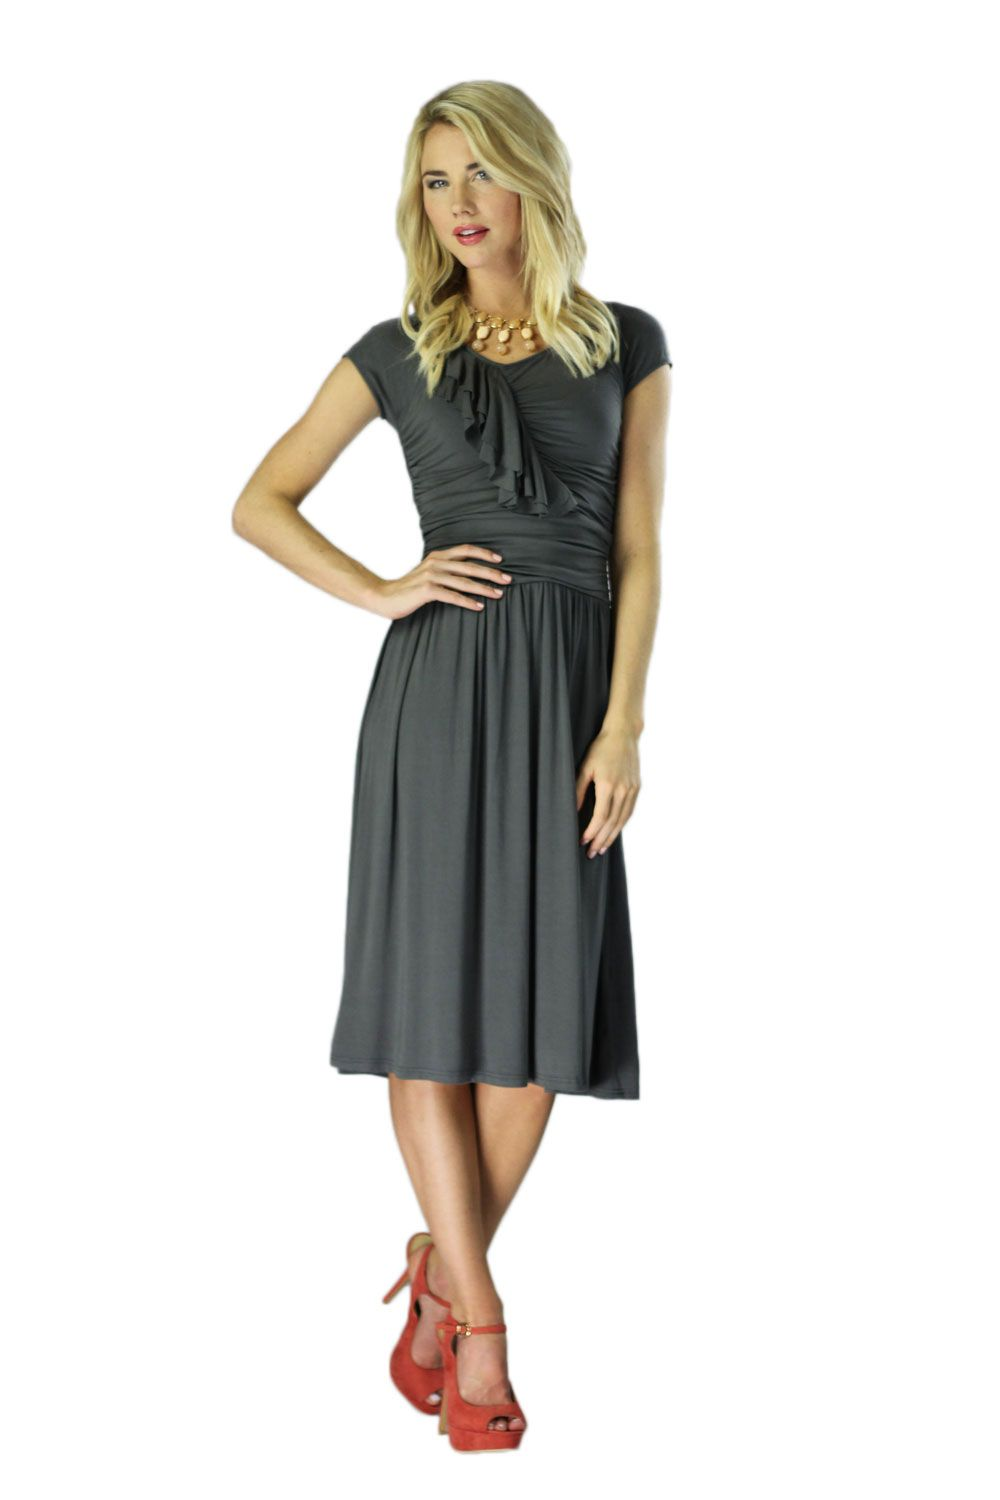 Modest Dresses In Grey Type 2℠ Soft Subtle Woman